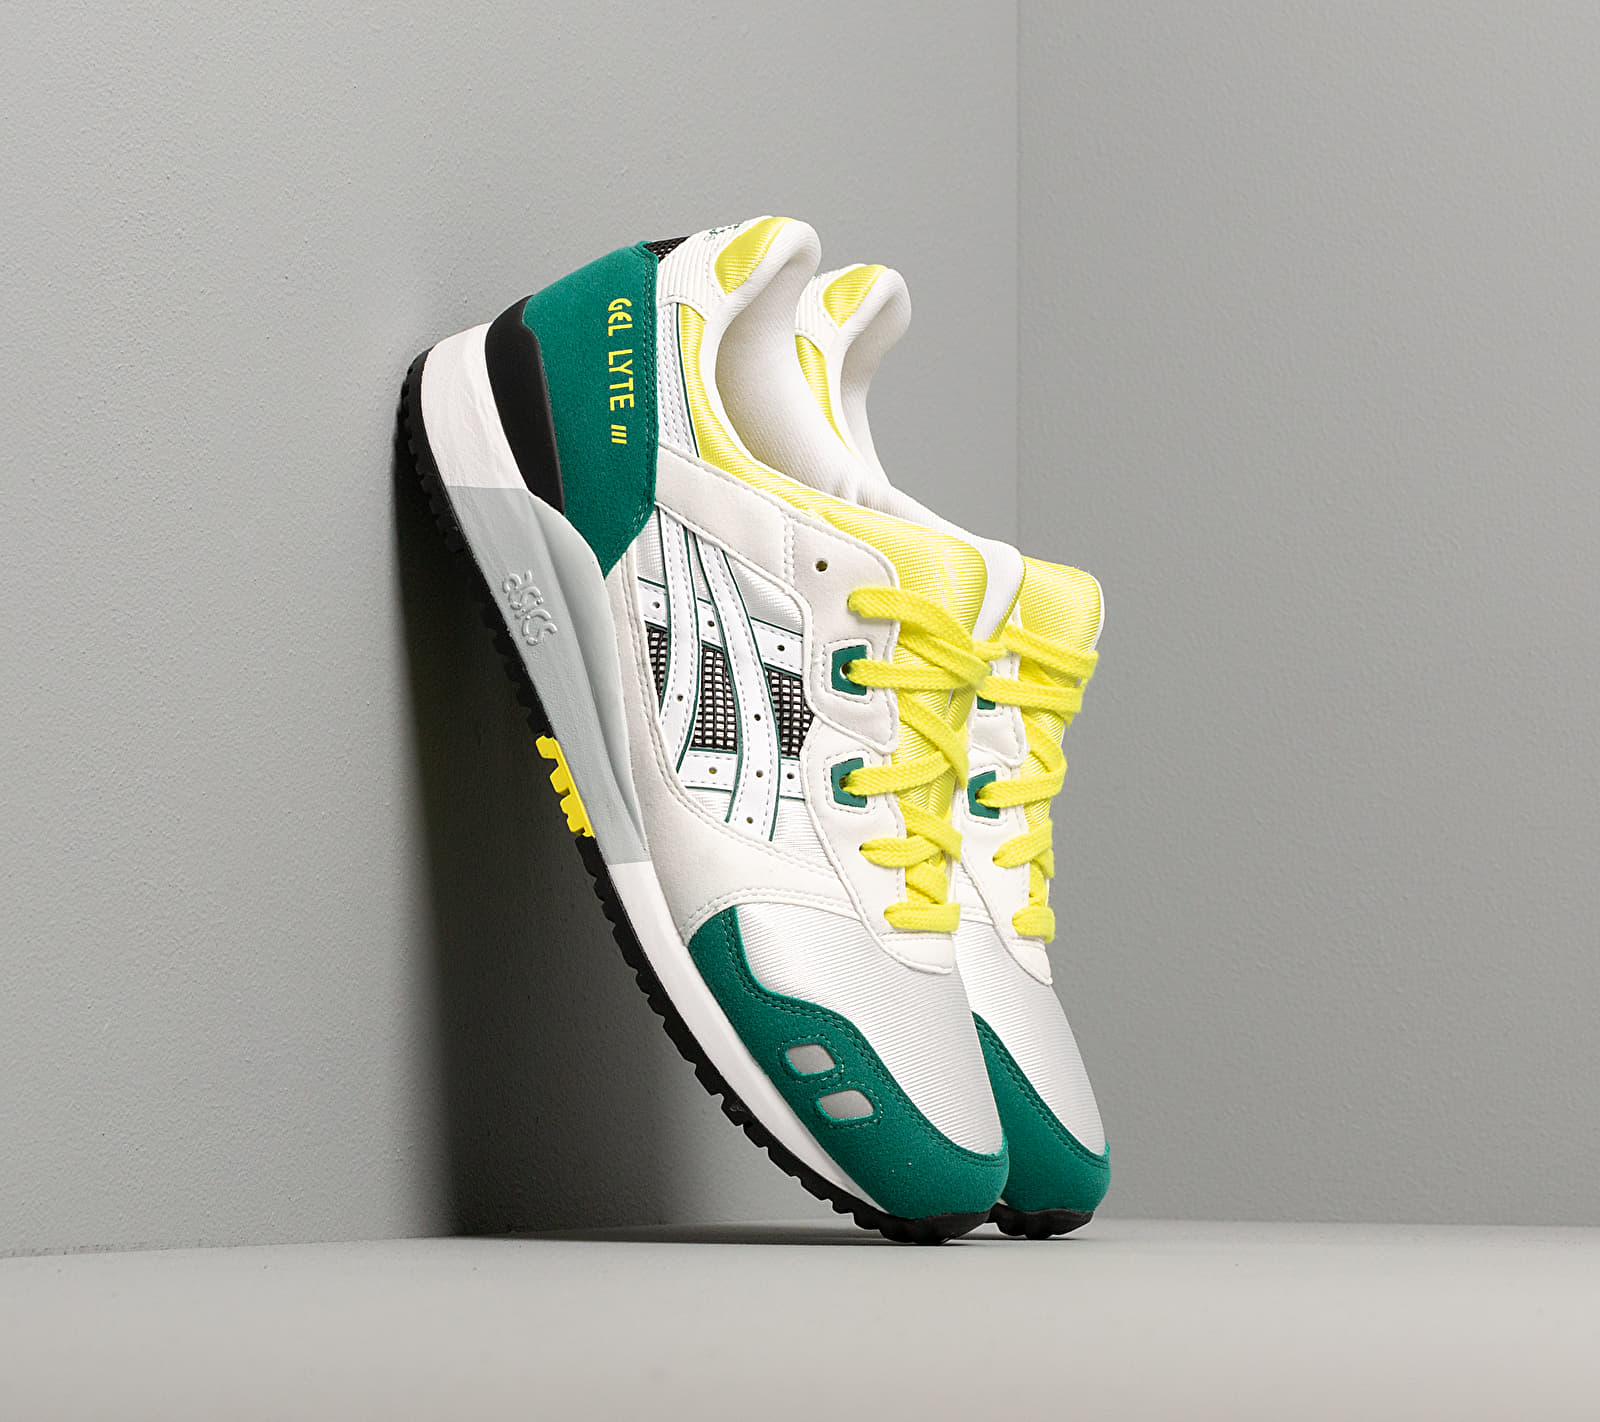 Asics GEL-LYTE III OG White/ Yellow EUR 40.5